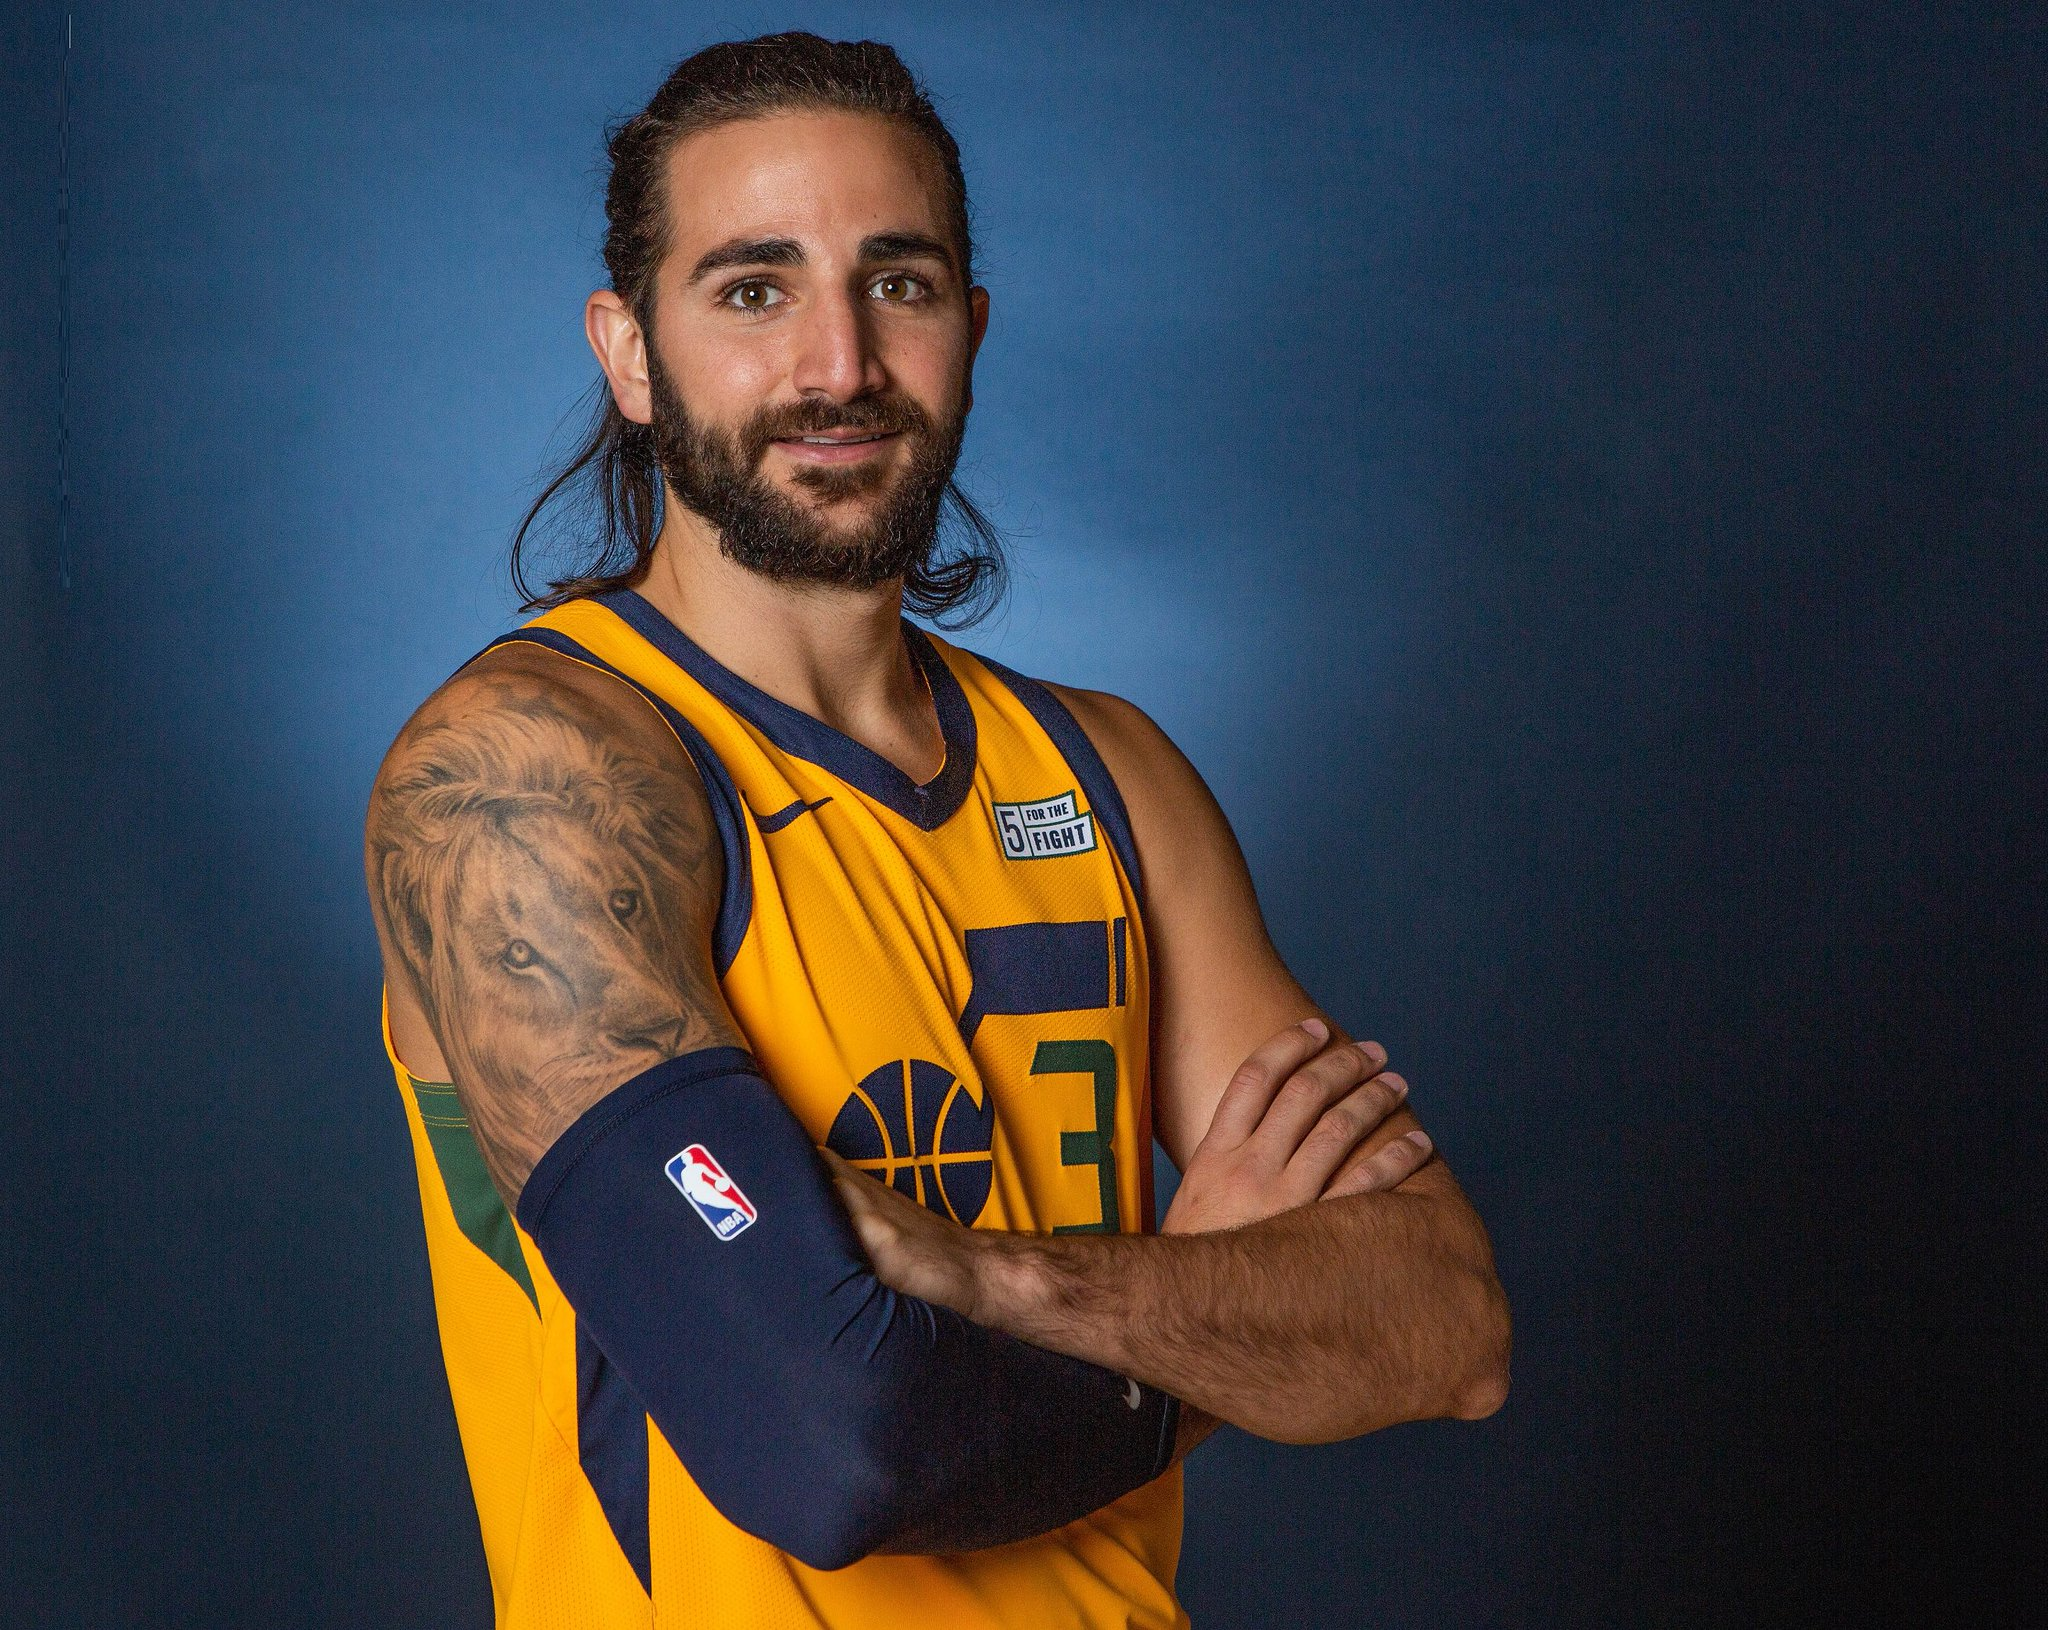 join us in wishing @rickyrubio9 of the @utahjazz a HAPPY 28th BIRTHDAY! #NBABDAY https://t.co/hYRzYy5AXF